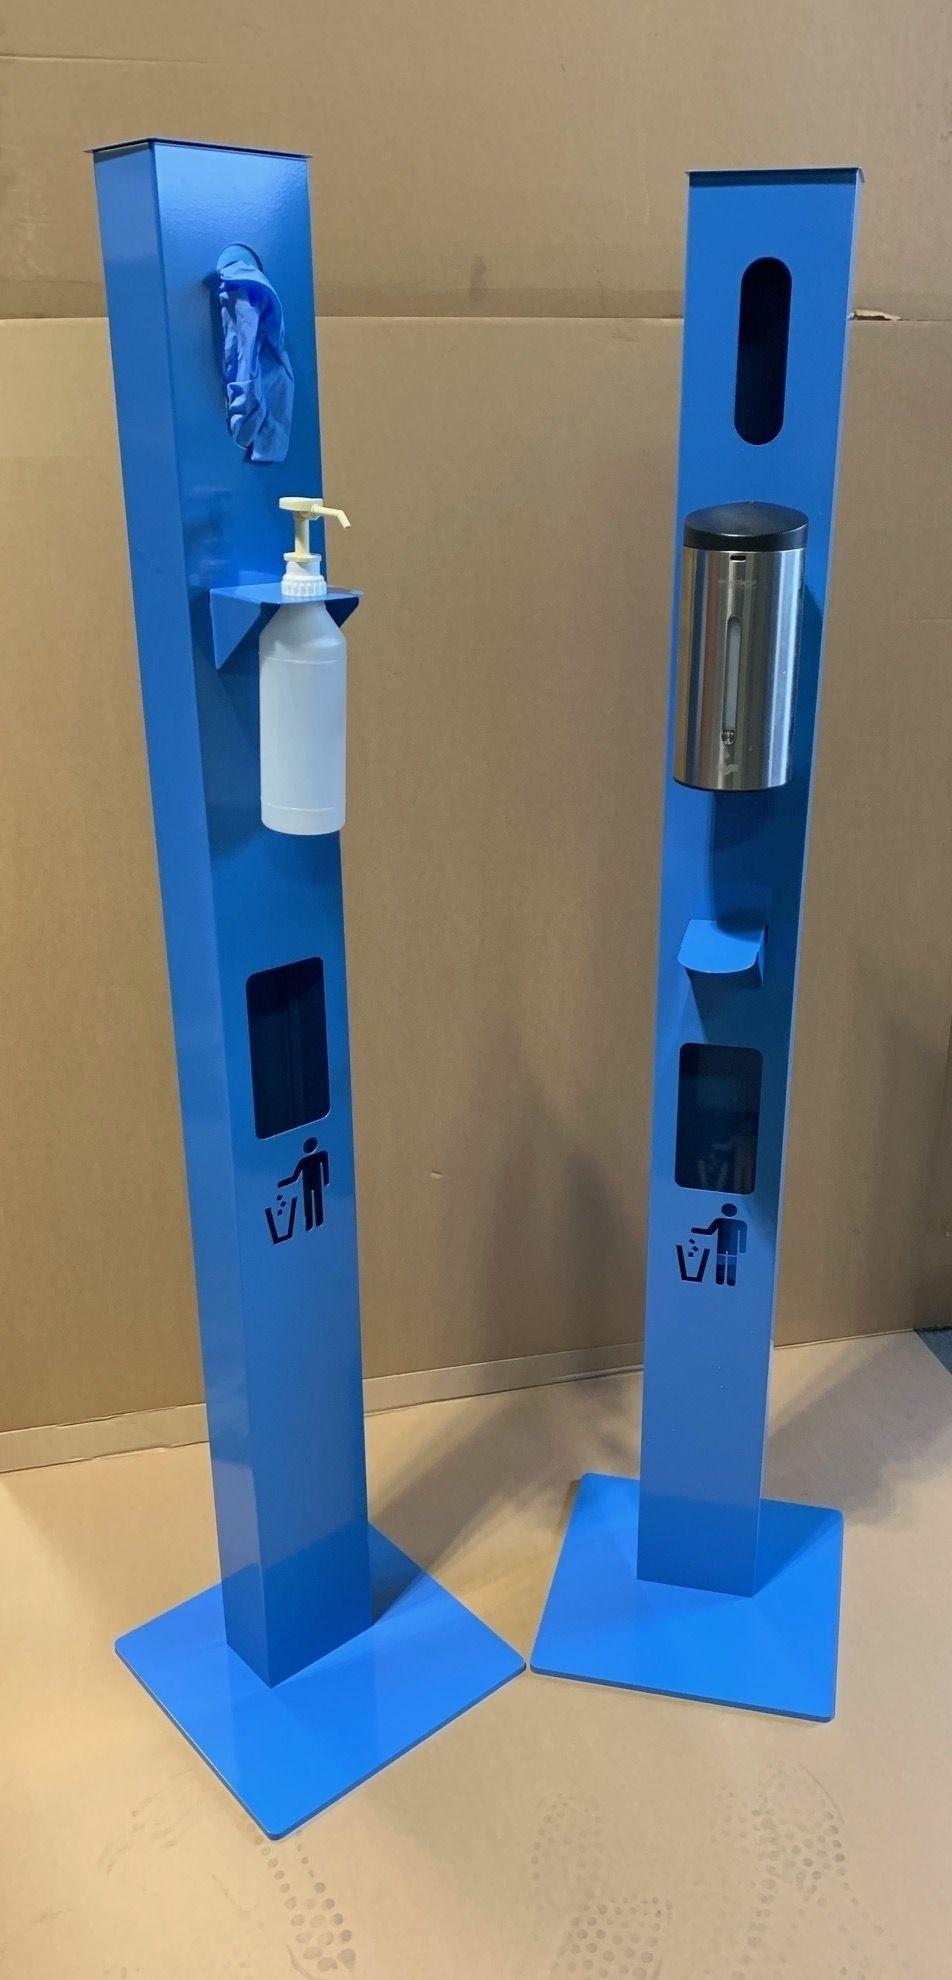 NEW - Dispenser - AMPER SRL